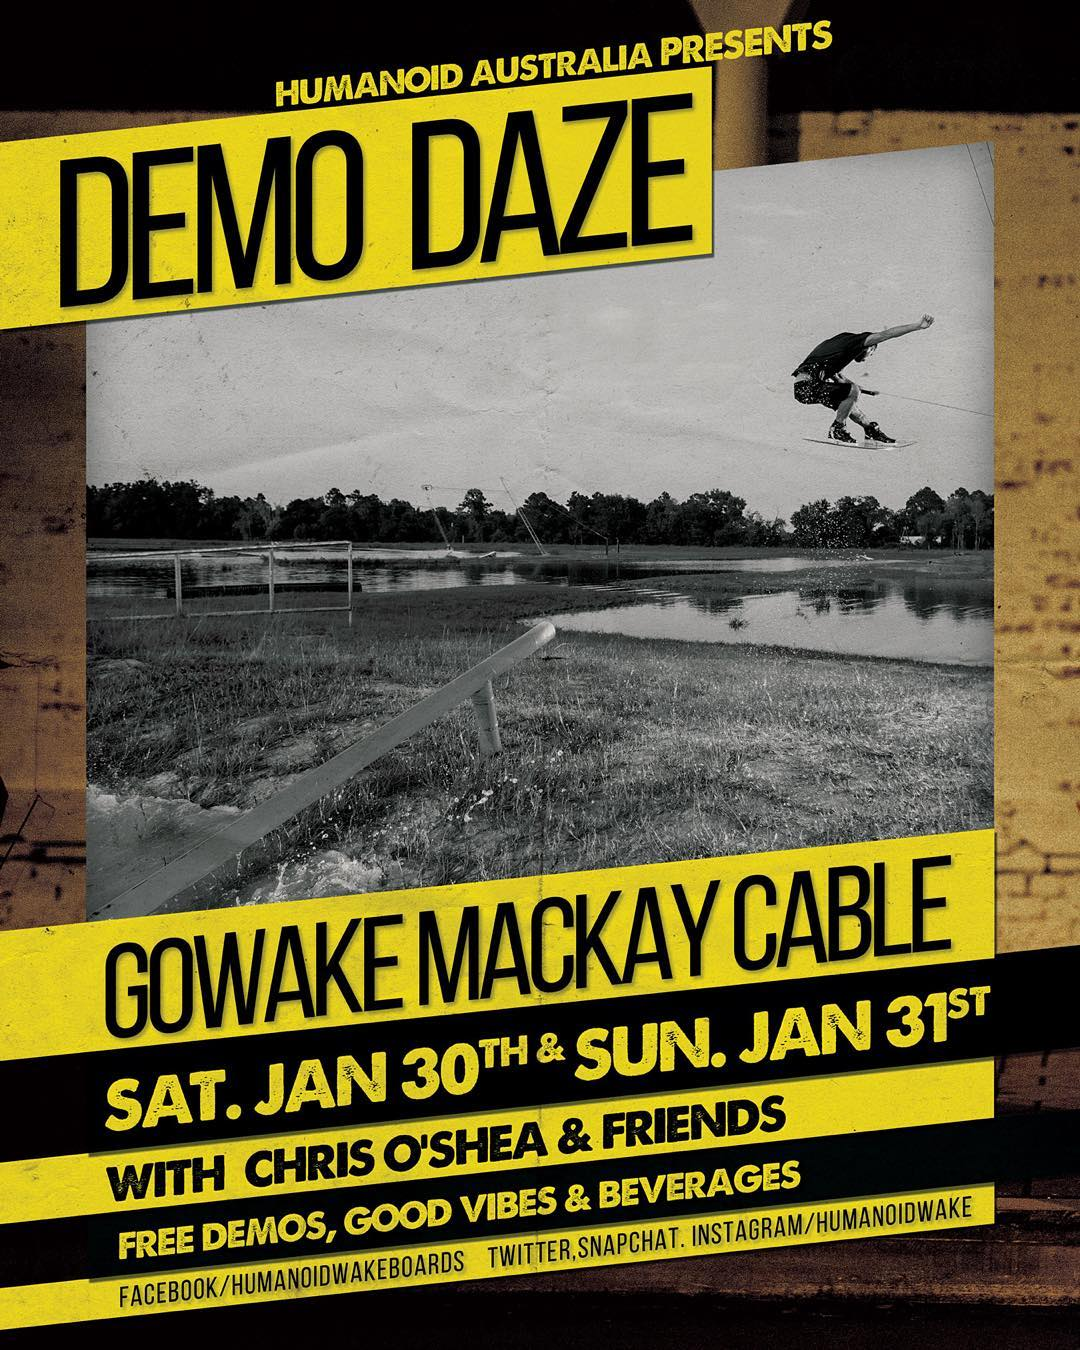 Oi Aussies! Get out to @gowakemackay this weekend and demo some gear! Hit up @livesimple and @mitchlangfield for more details #wakeboarding